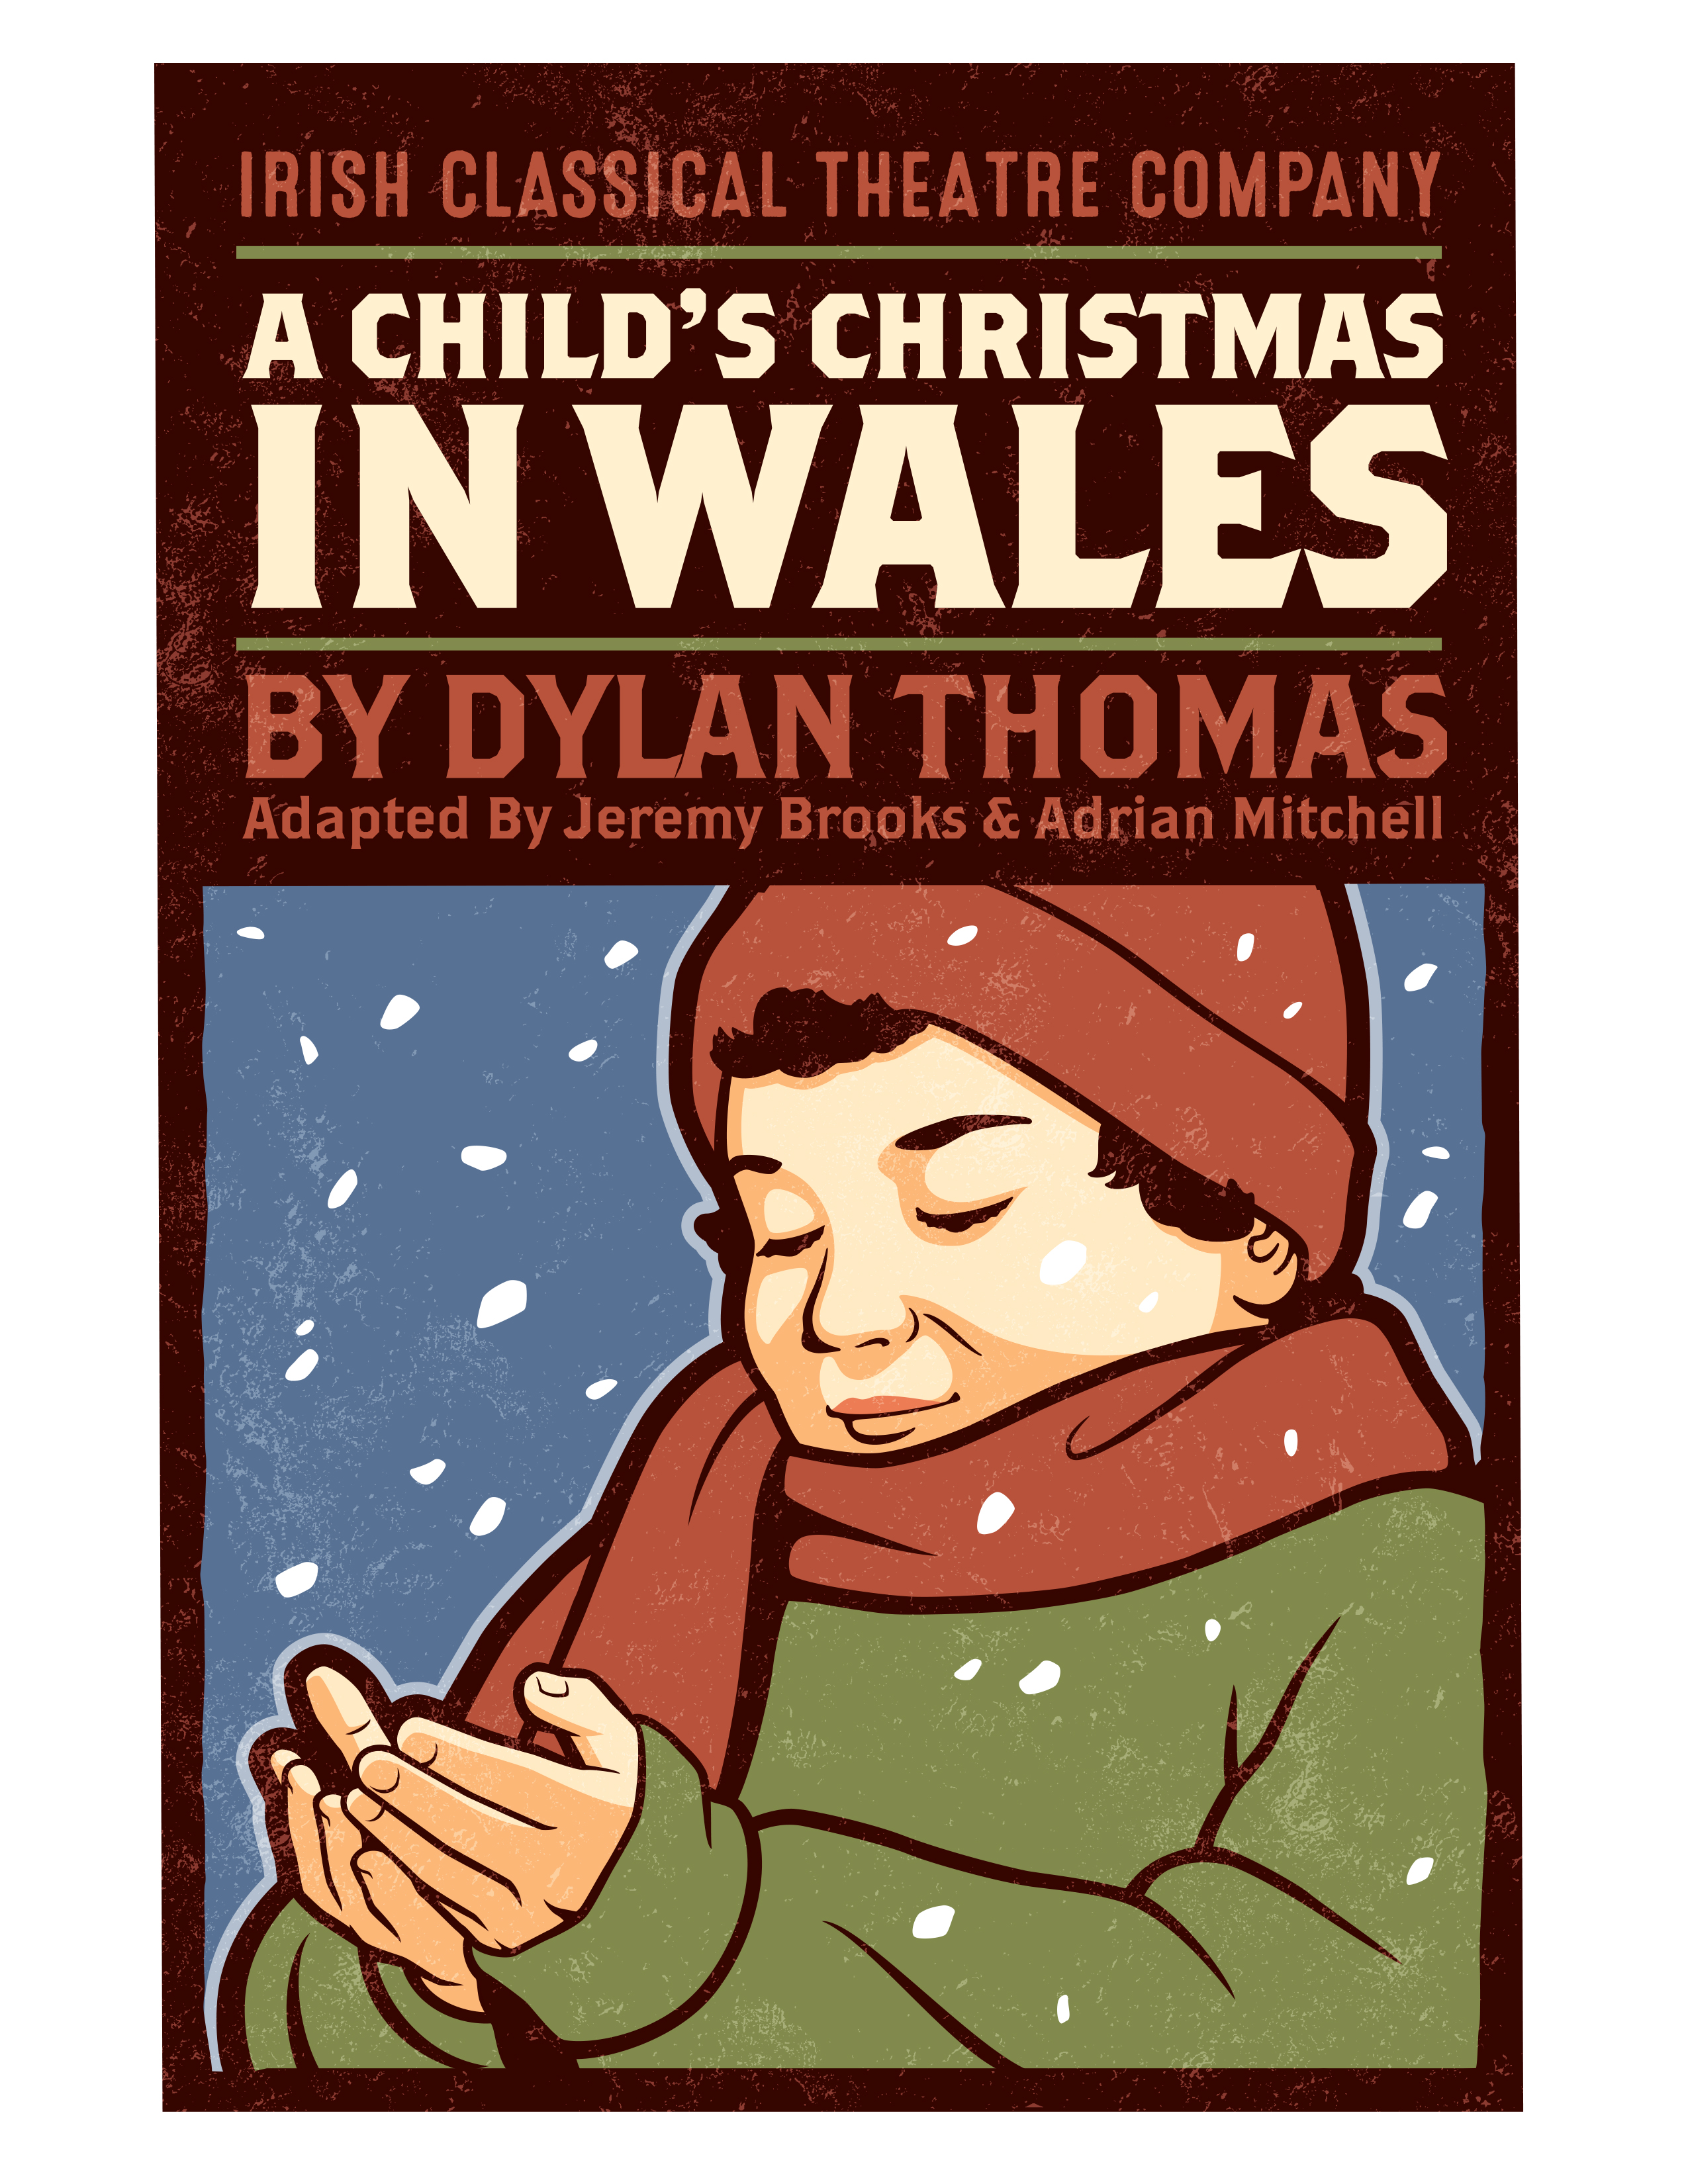 A Childs Christmas In Wales.A Child S Christmas In Wales Irish Classical Theatre Company